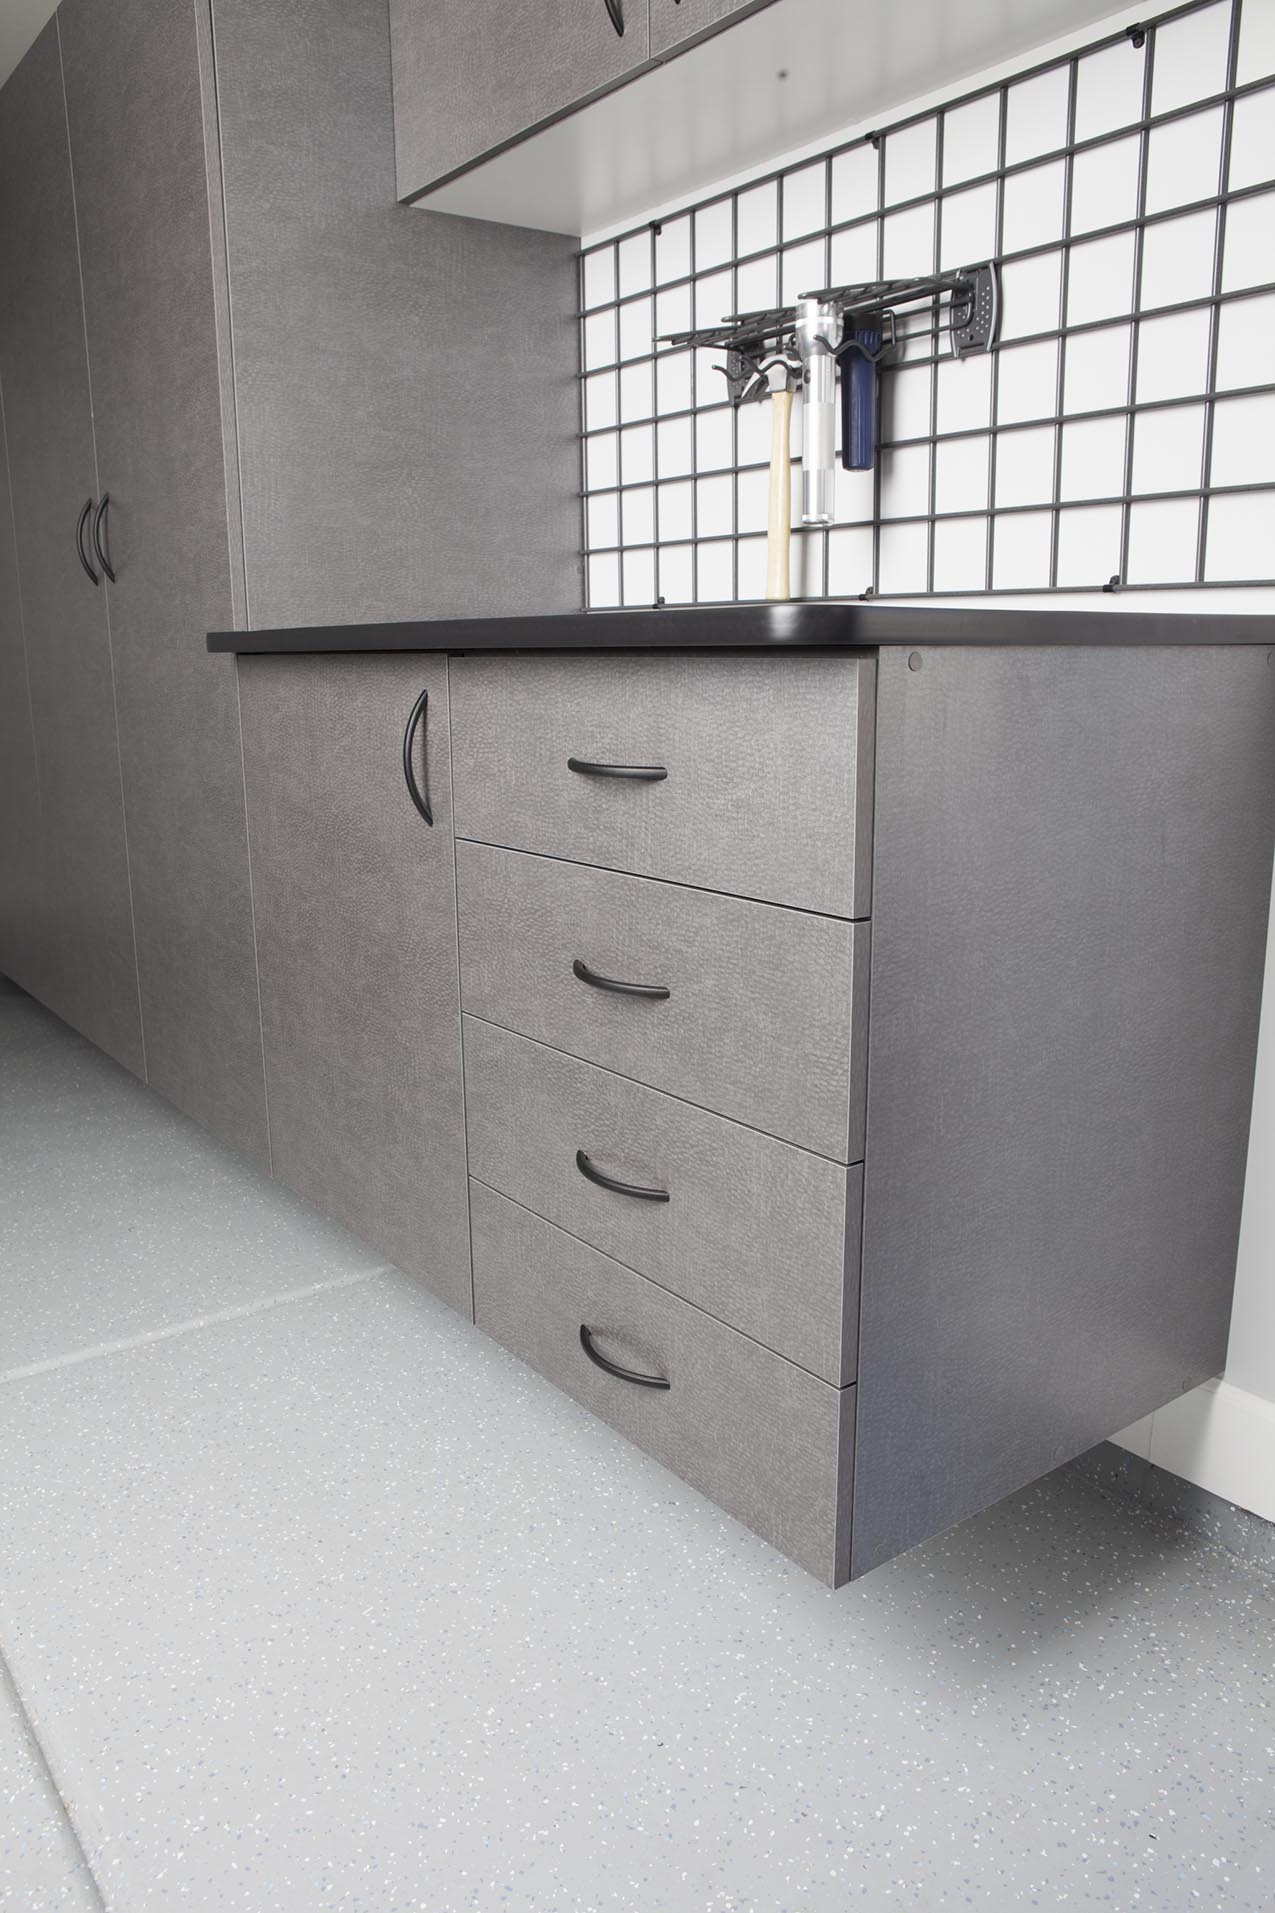 Pewter Cabinets and Drawers